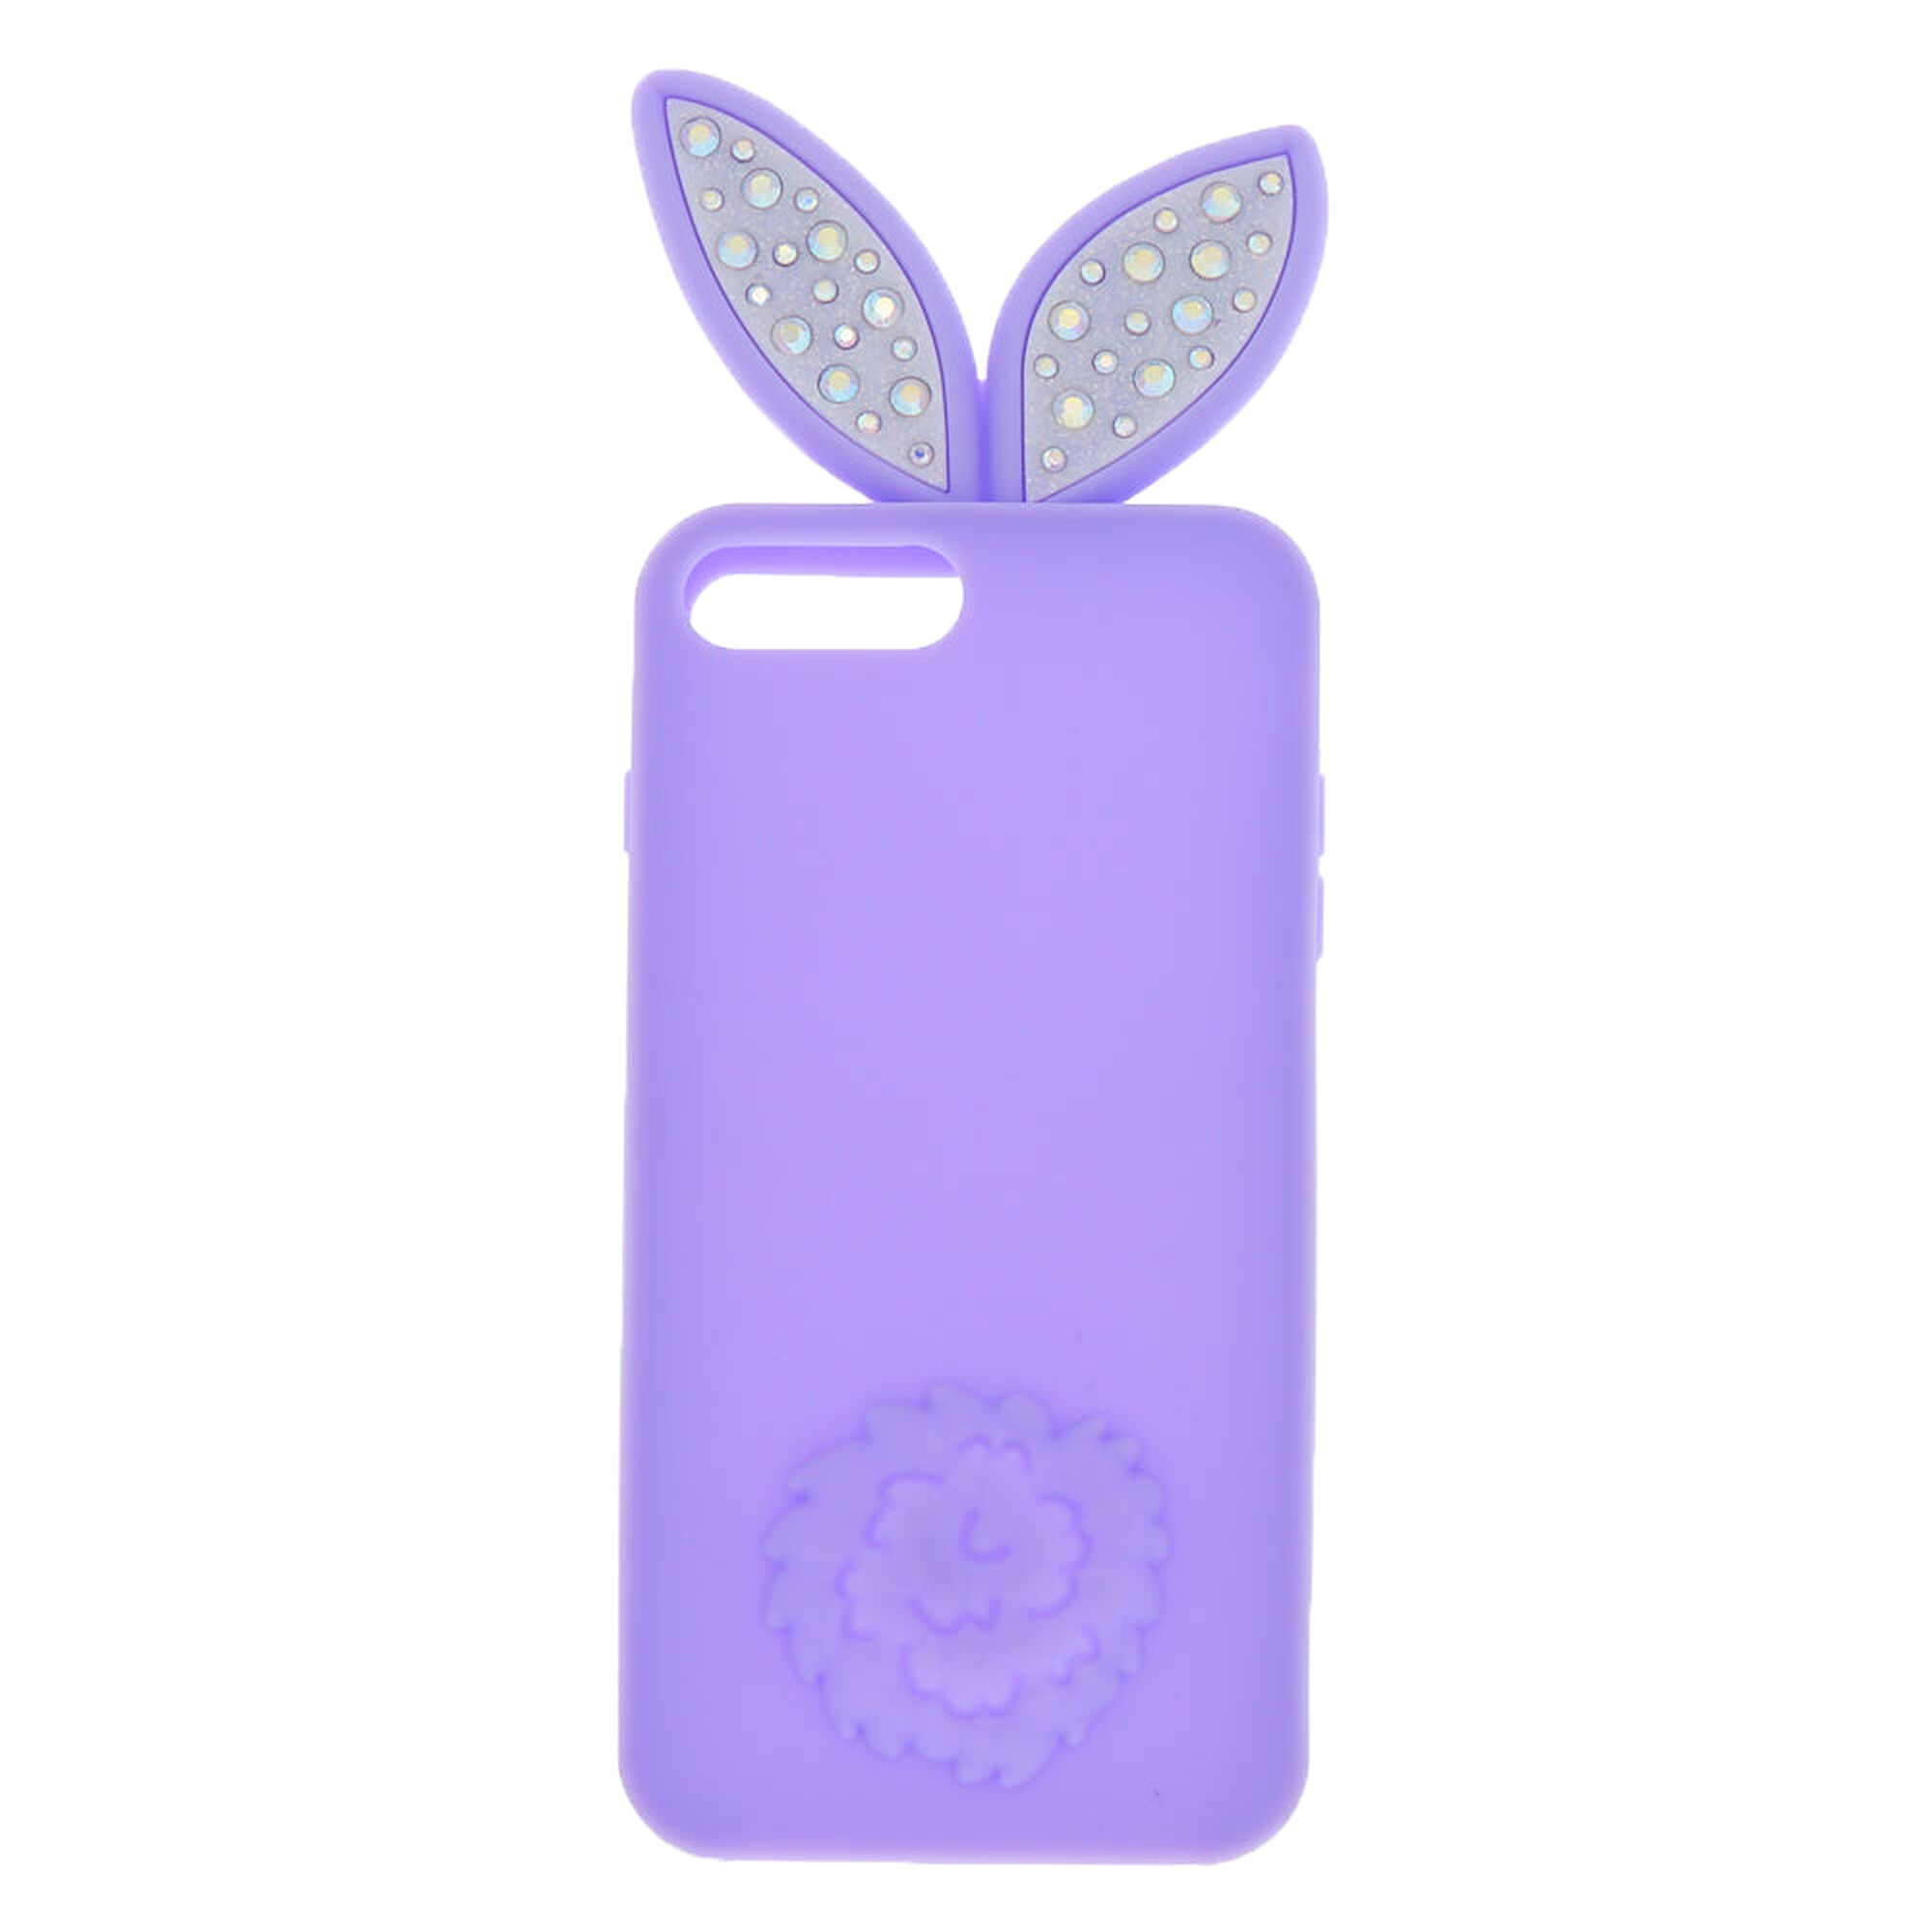 sports shoes 9f0a4 2b8b8 Bling Bunny Ears Silicone Phone Case - Fits iPhone 6/7/8